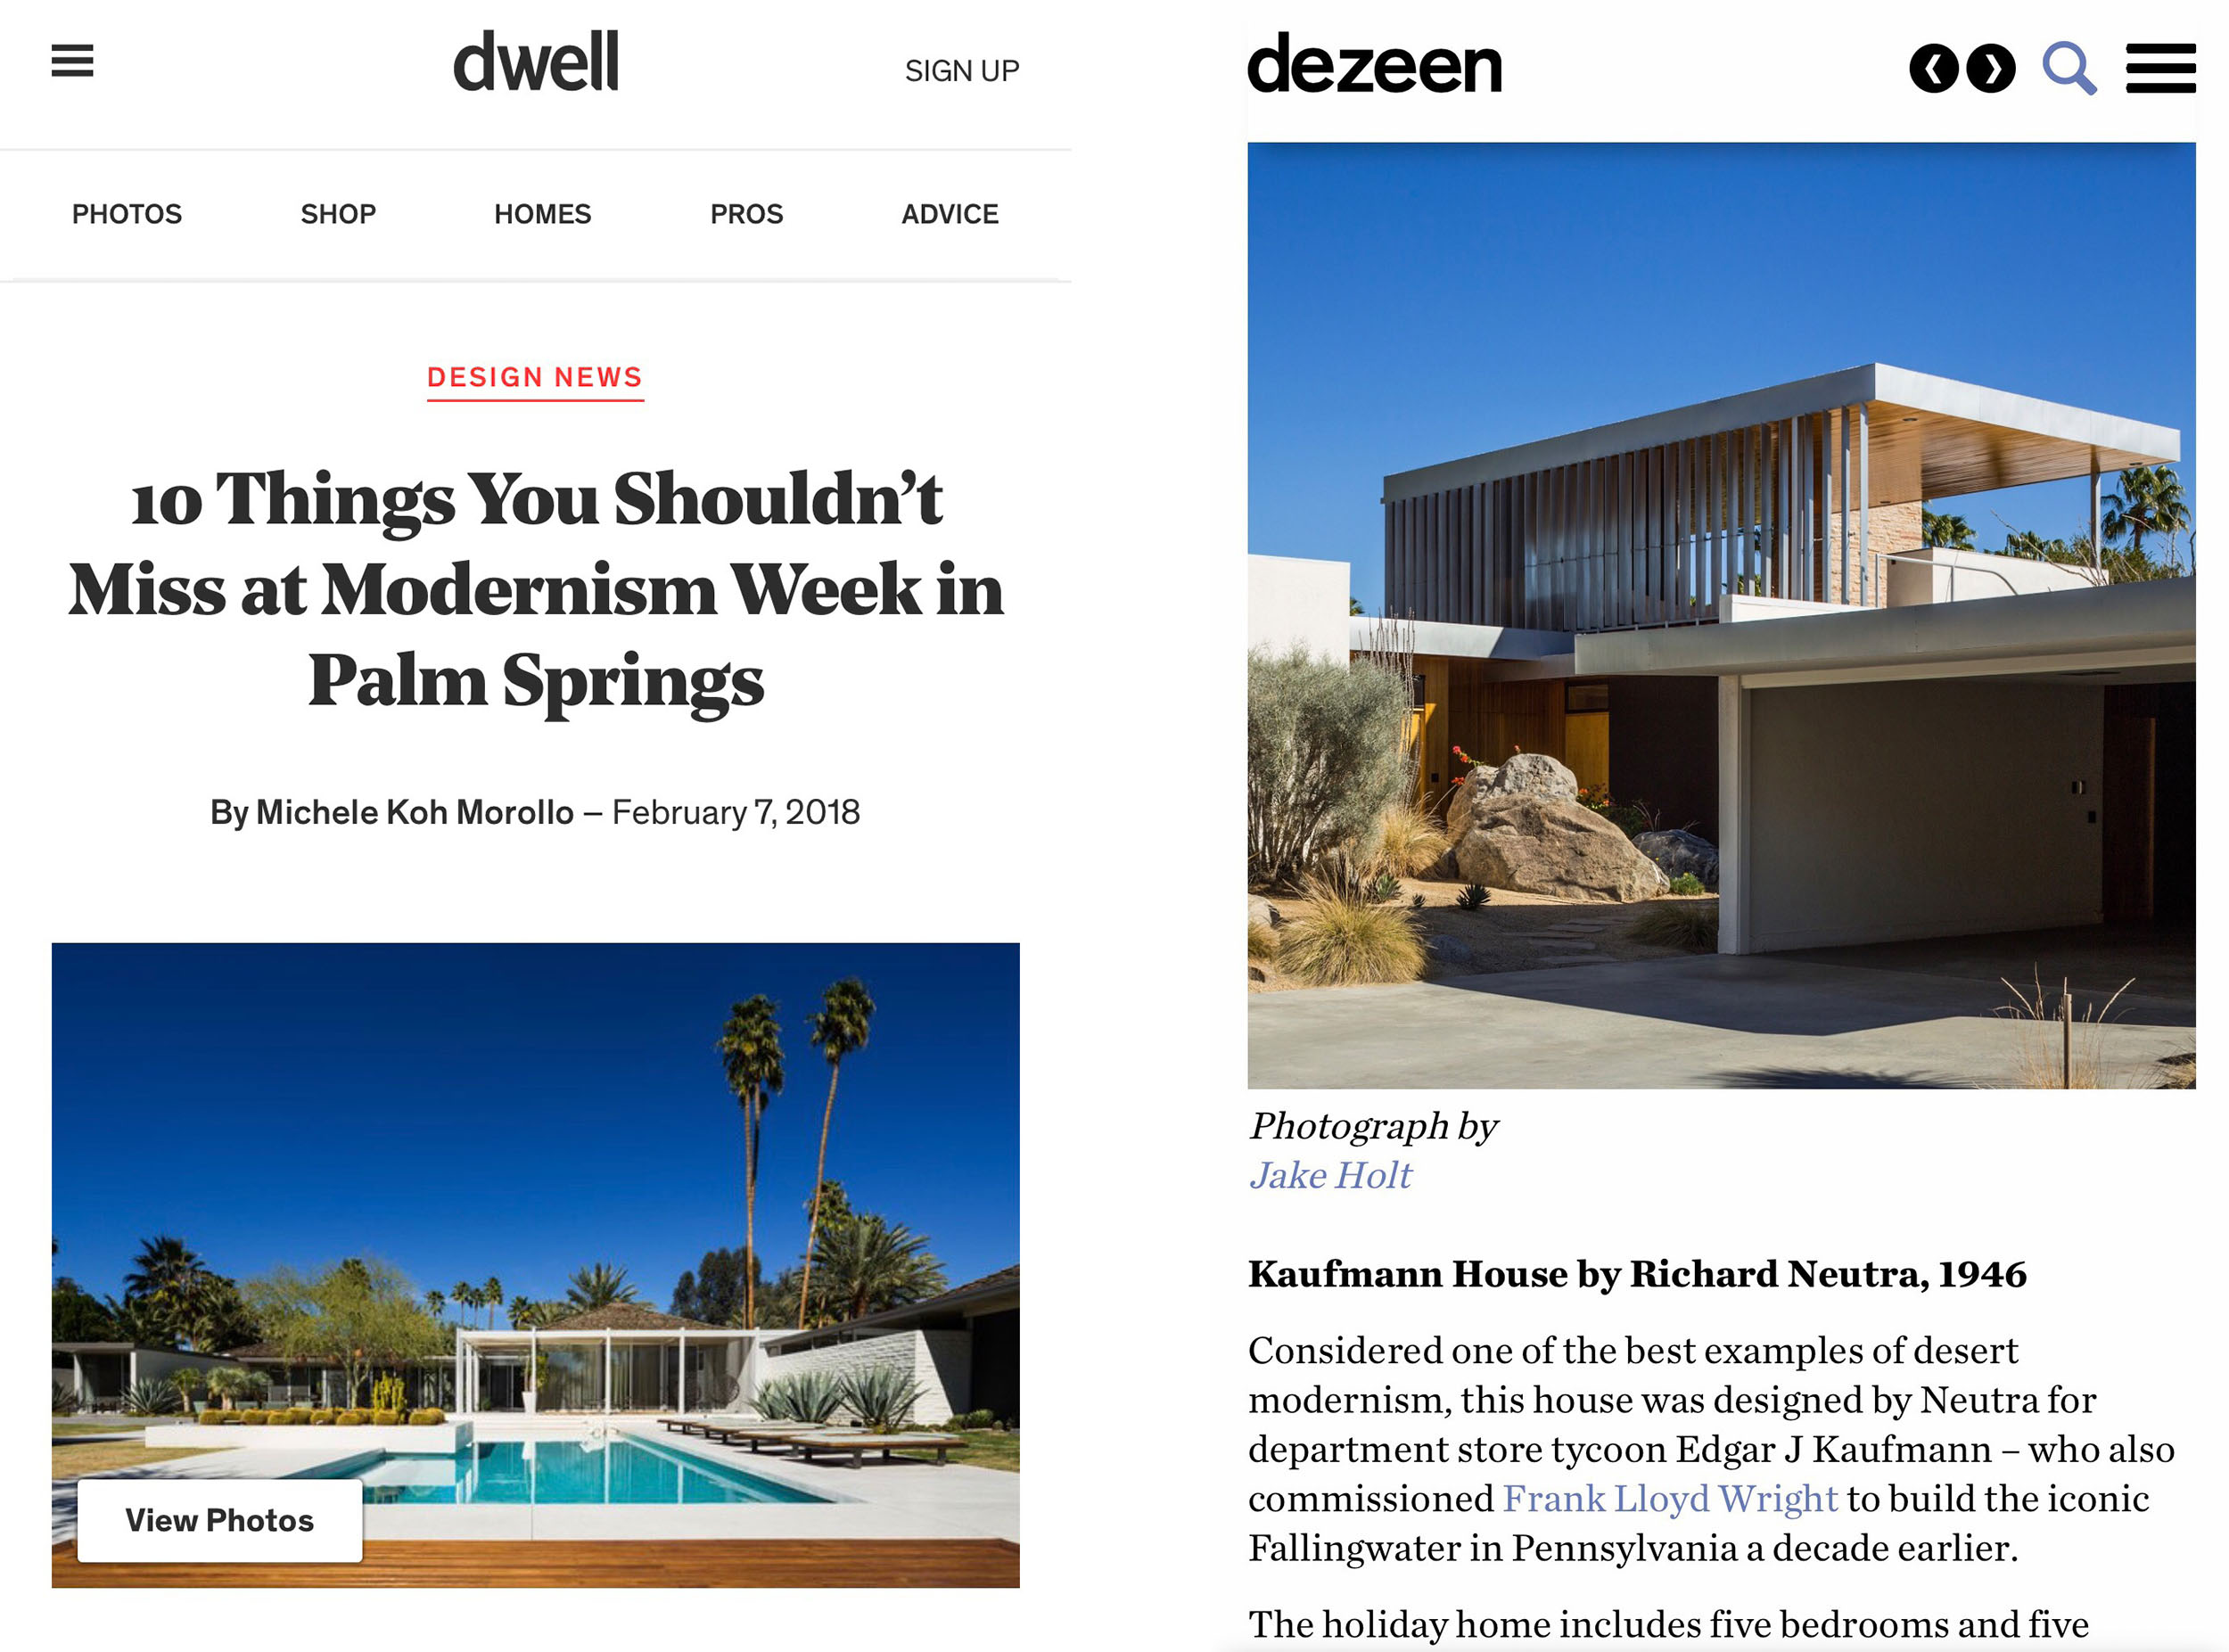 jake-holt-published-architecture-photography-dwell-magazine-dezeen.jpg